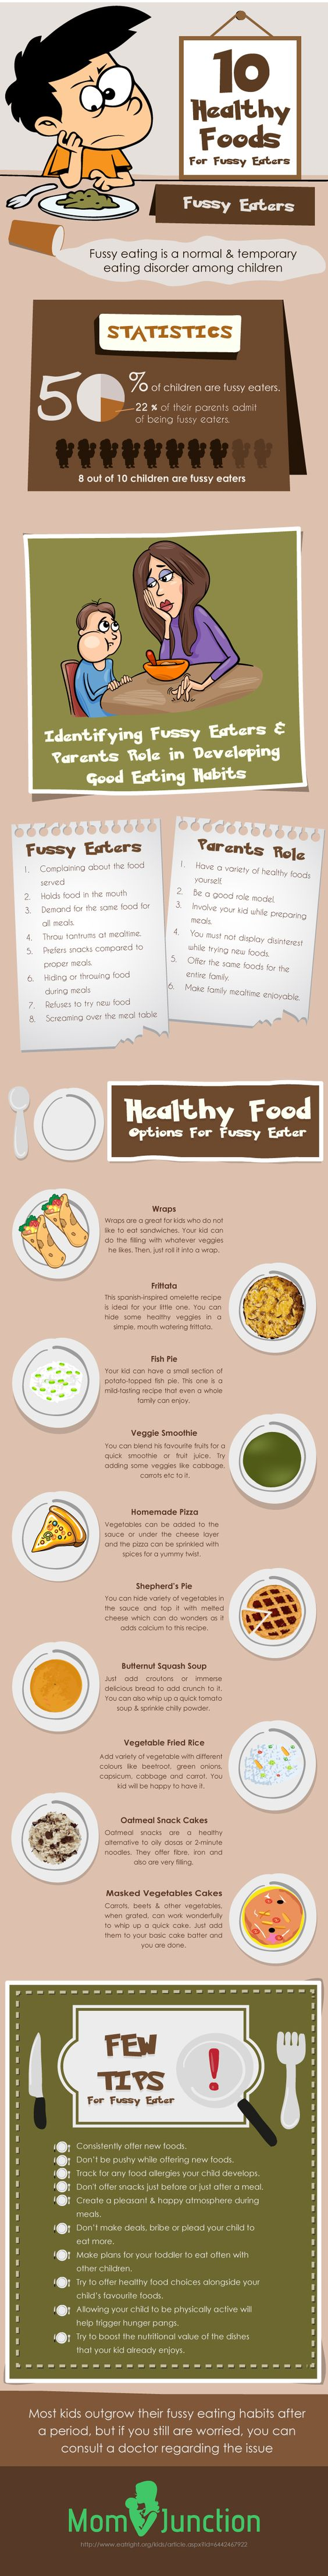 Is your little one a fussy eater? Worried about the eating habits and finding out the ways to make them eat healthy? Here is some visual data, compiled by Mom Junction, that can help you out in choosing the best food options for your little fussy eater.